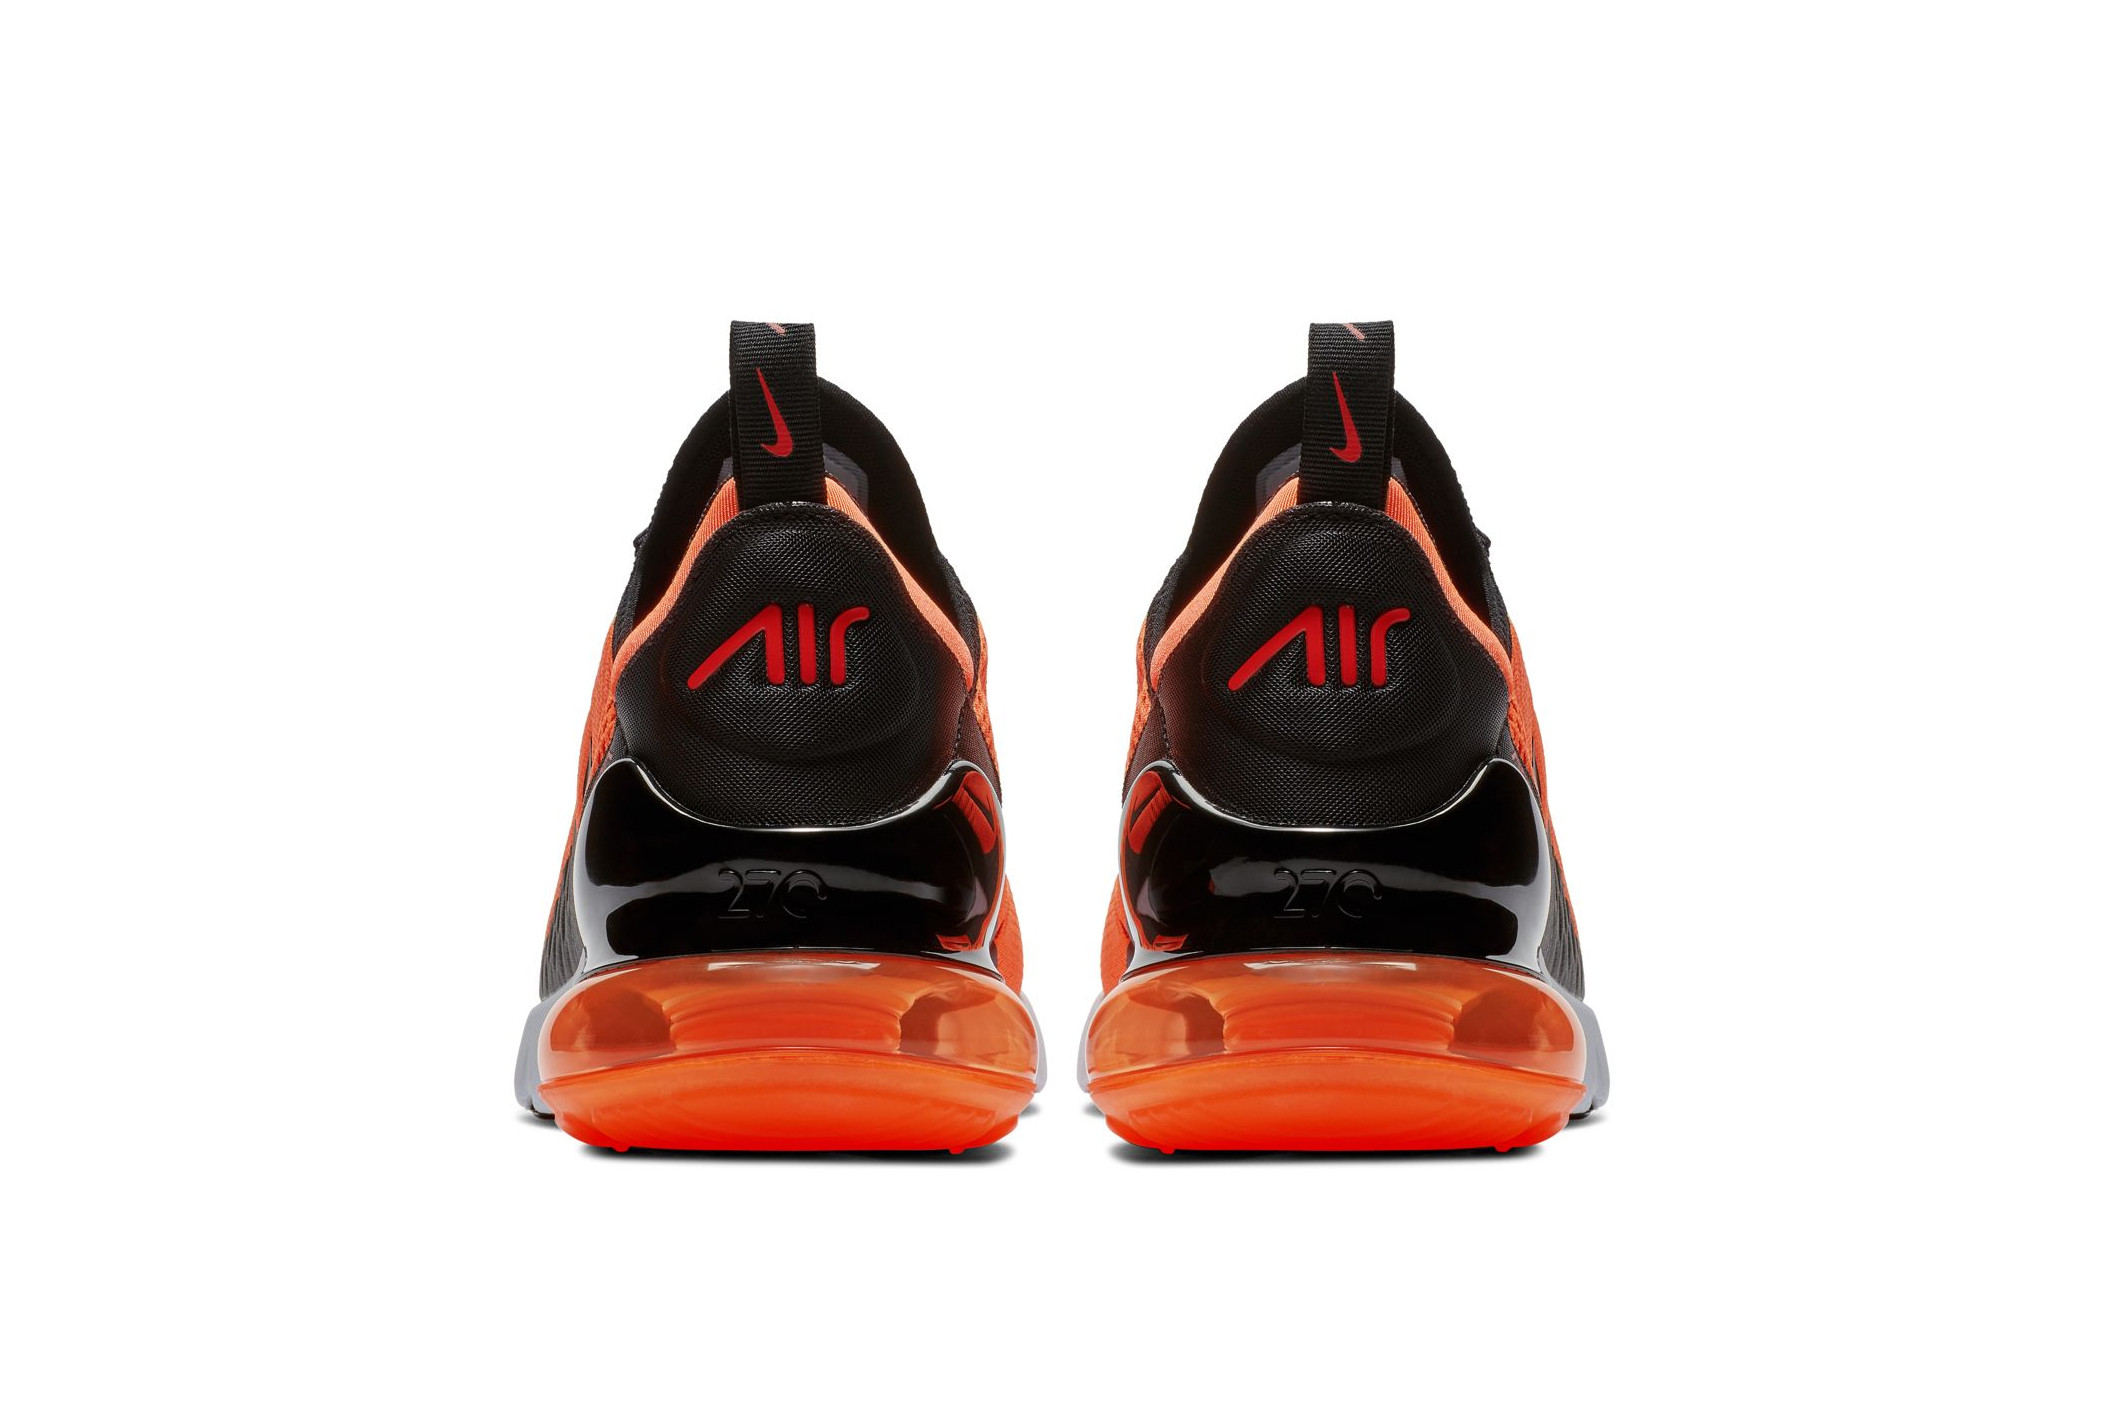 https---hypebeast.com-image-2018-08-nike-gives-the-air-max-270-a-total-orange-rework-03